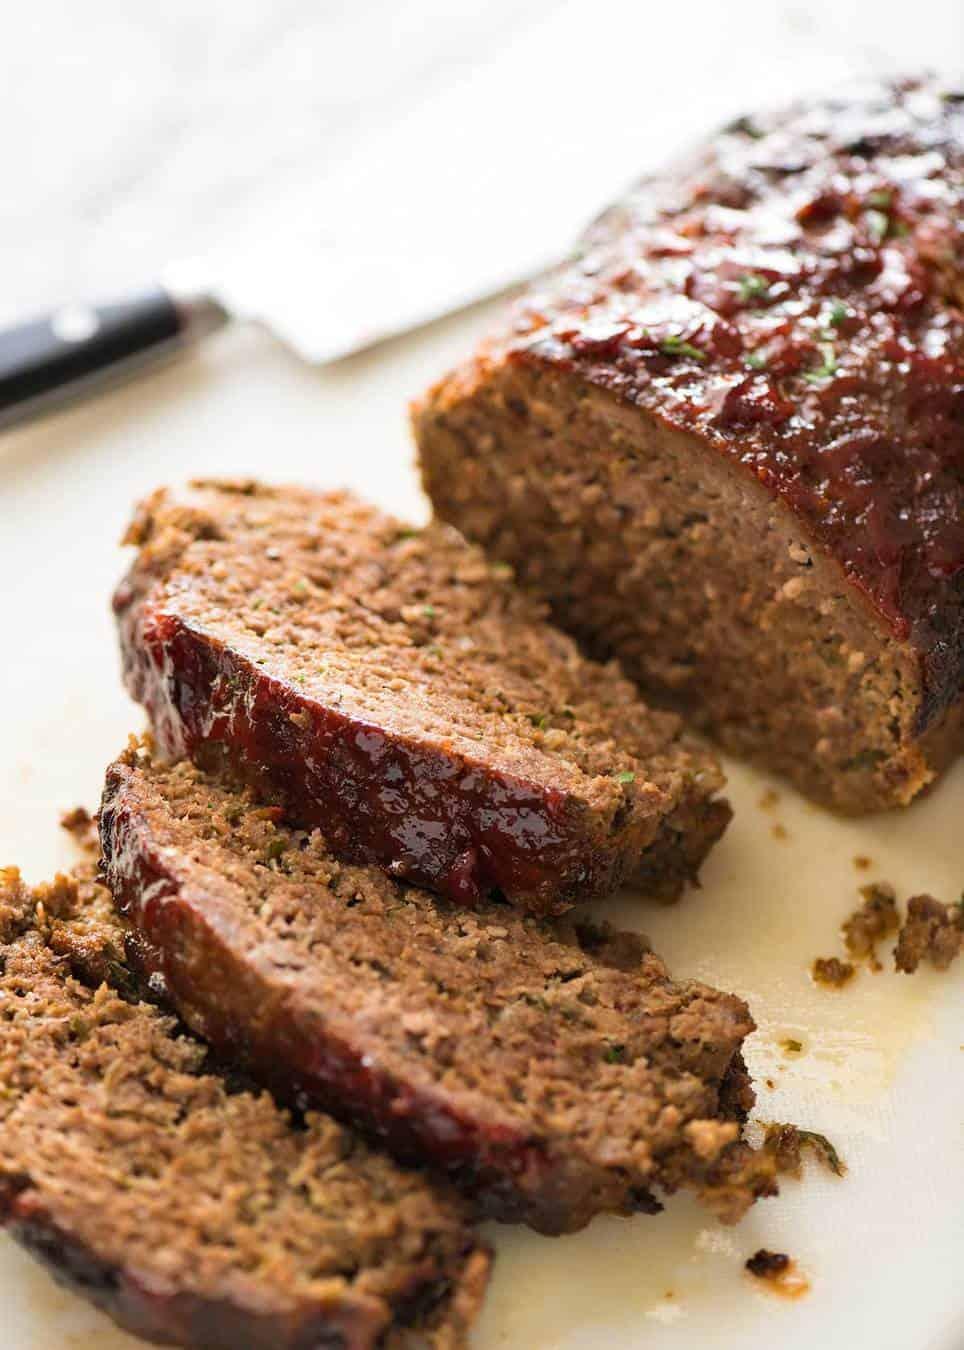 Meatloaf is so much more than a giant hunk of ground beef in a loaf shape. It should ooze with flavour, be moist and tender yet not crumble apart when sliced. www.recipetineats.com